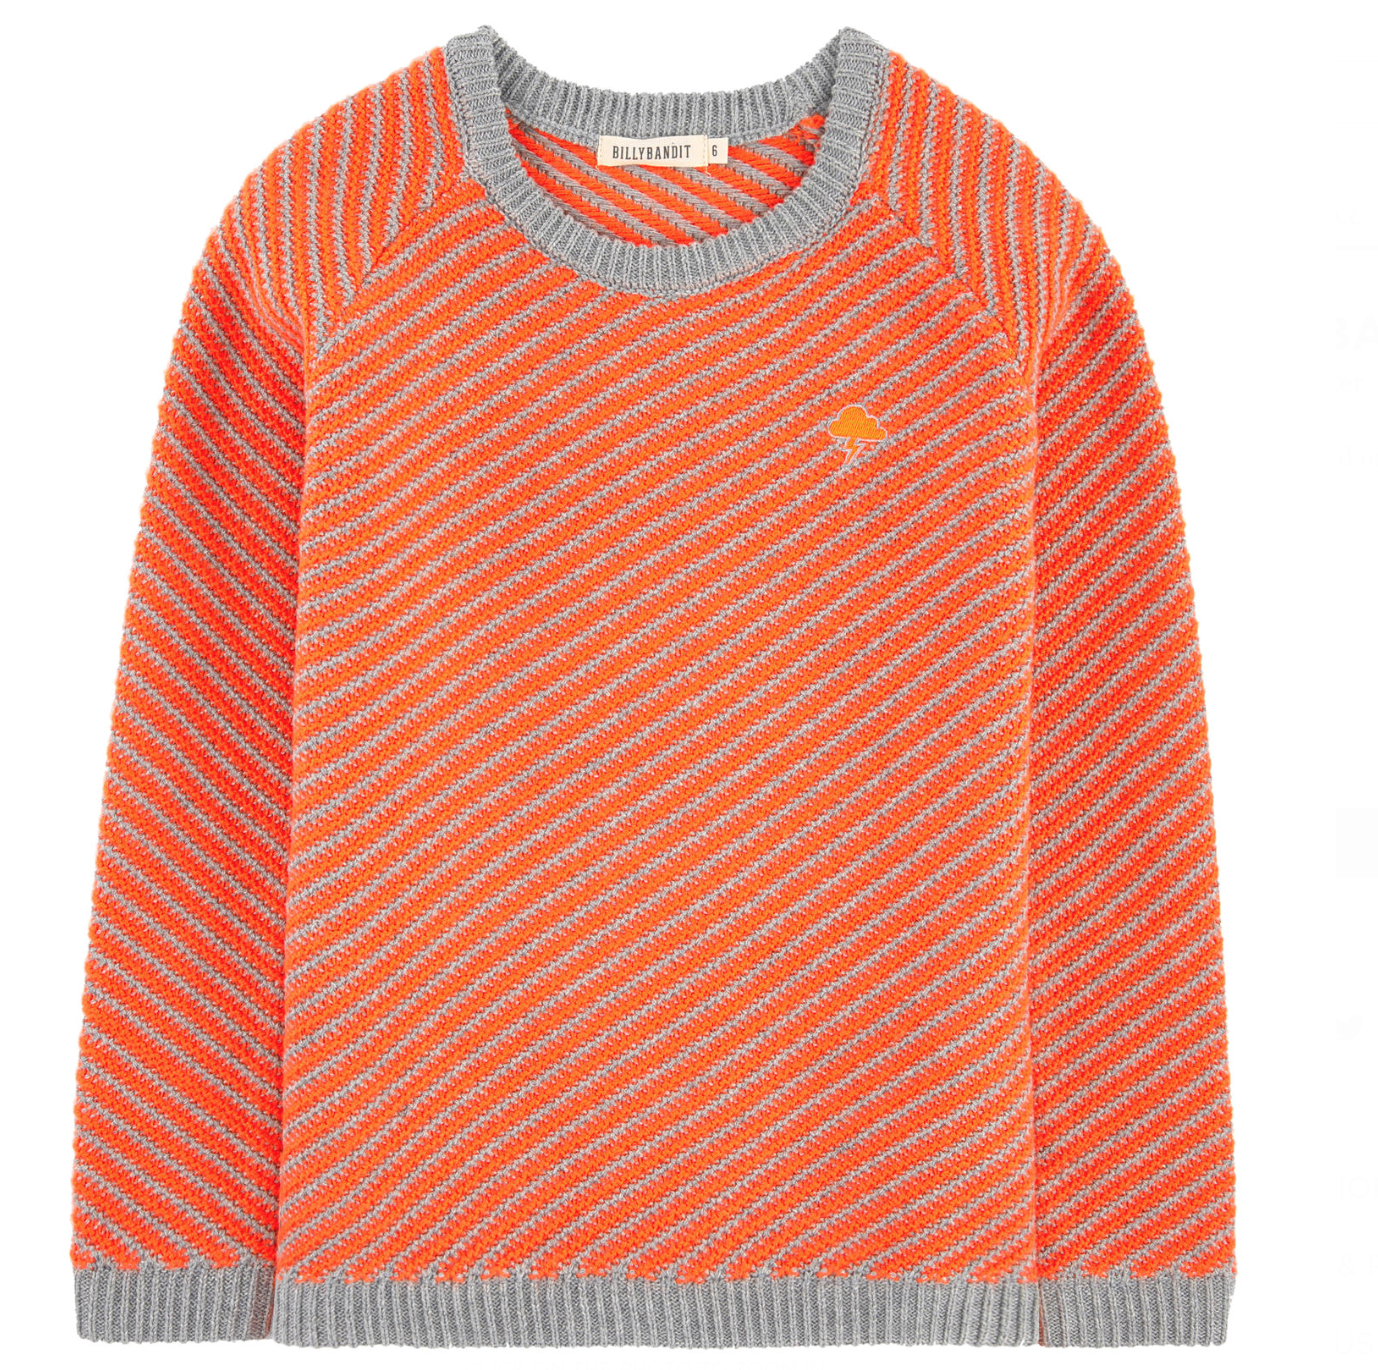 Grey And Orange Knitted Jumper